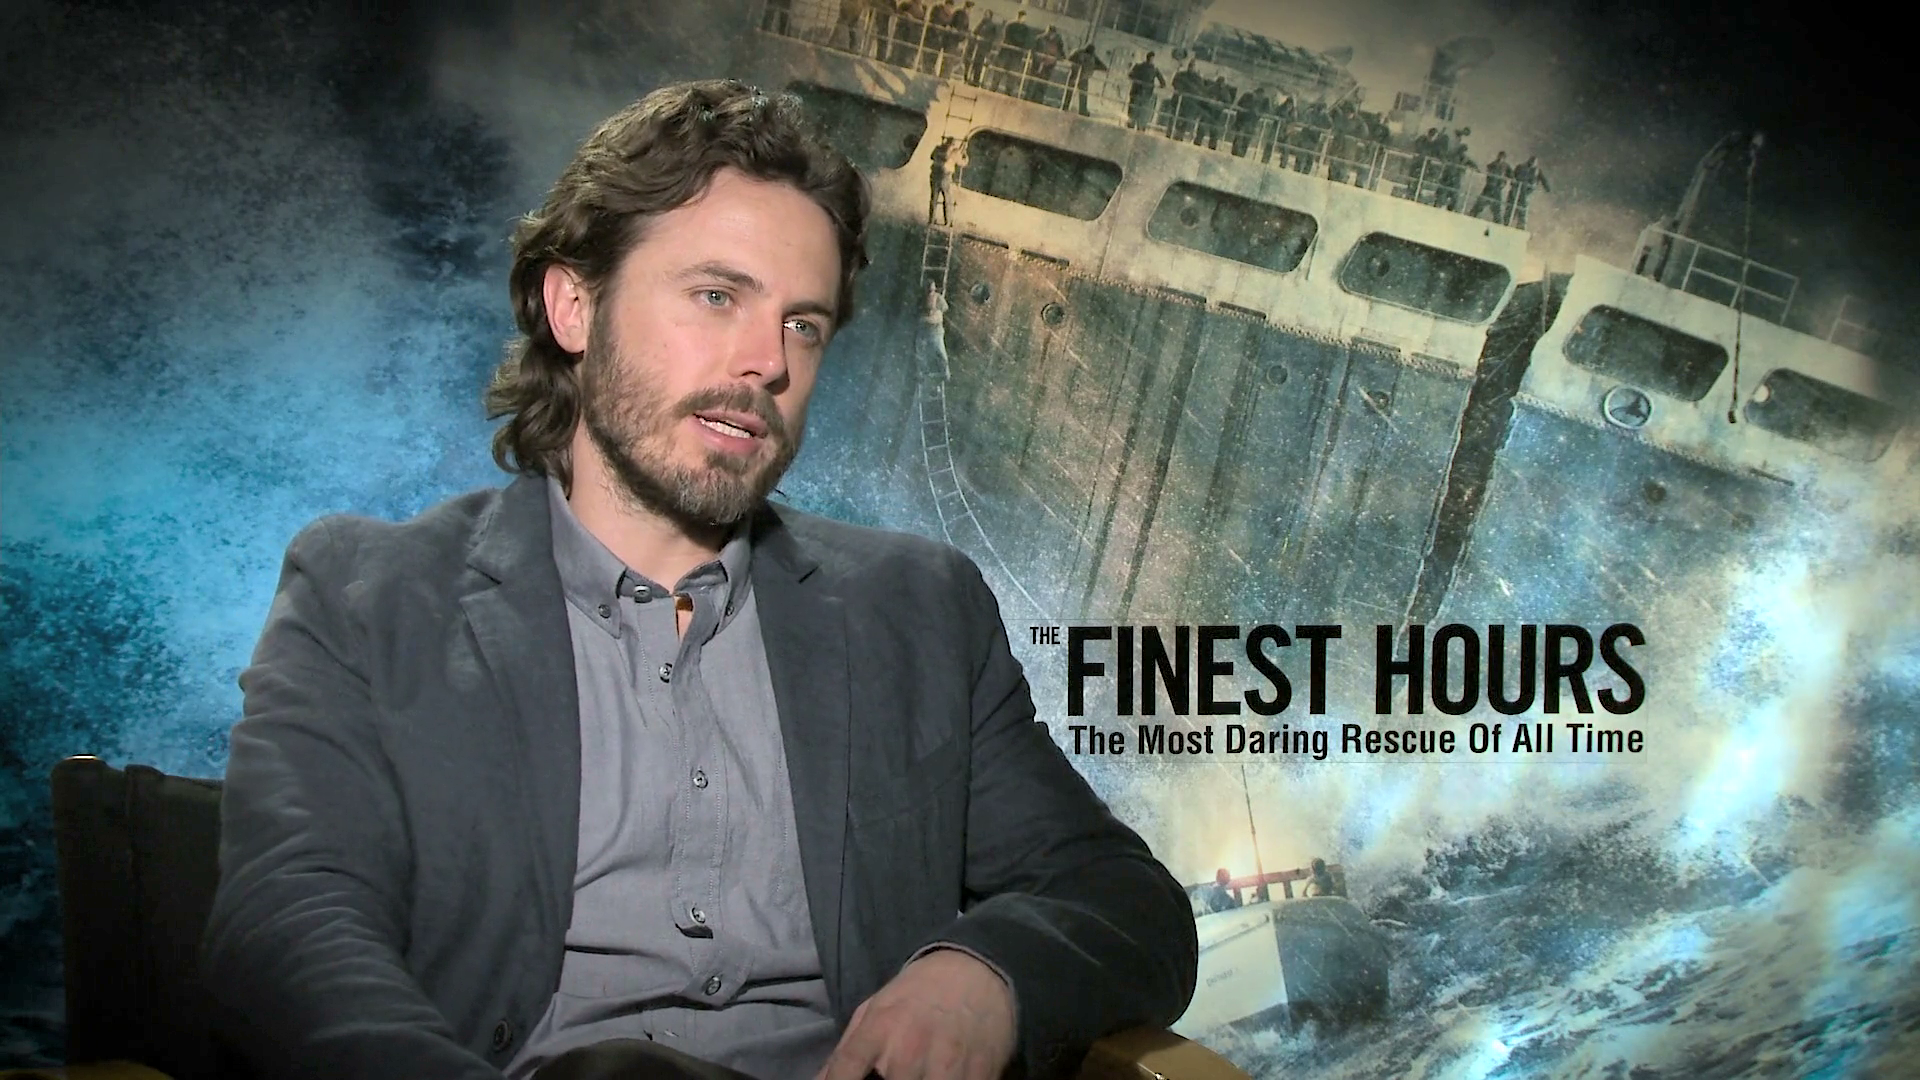 Behind The Scenes with the Cast of The Finest Hours | Disney Insider